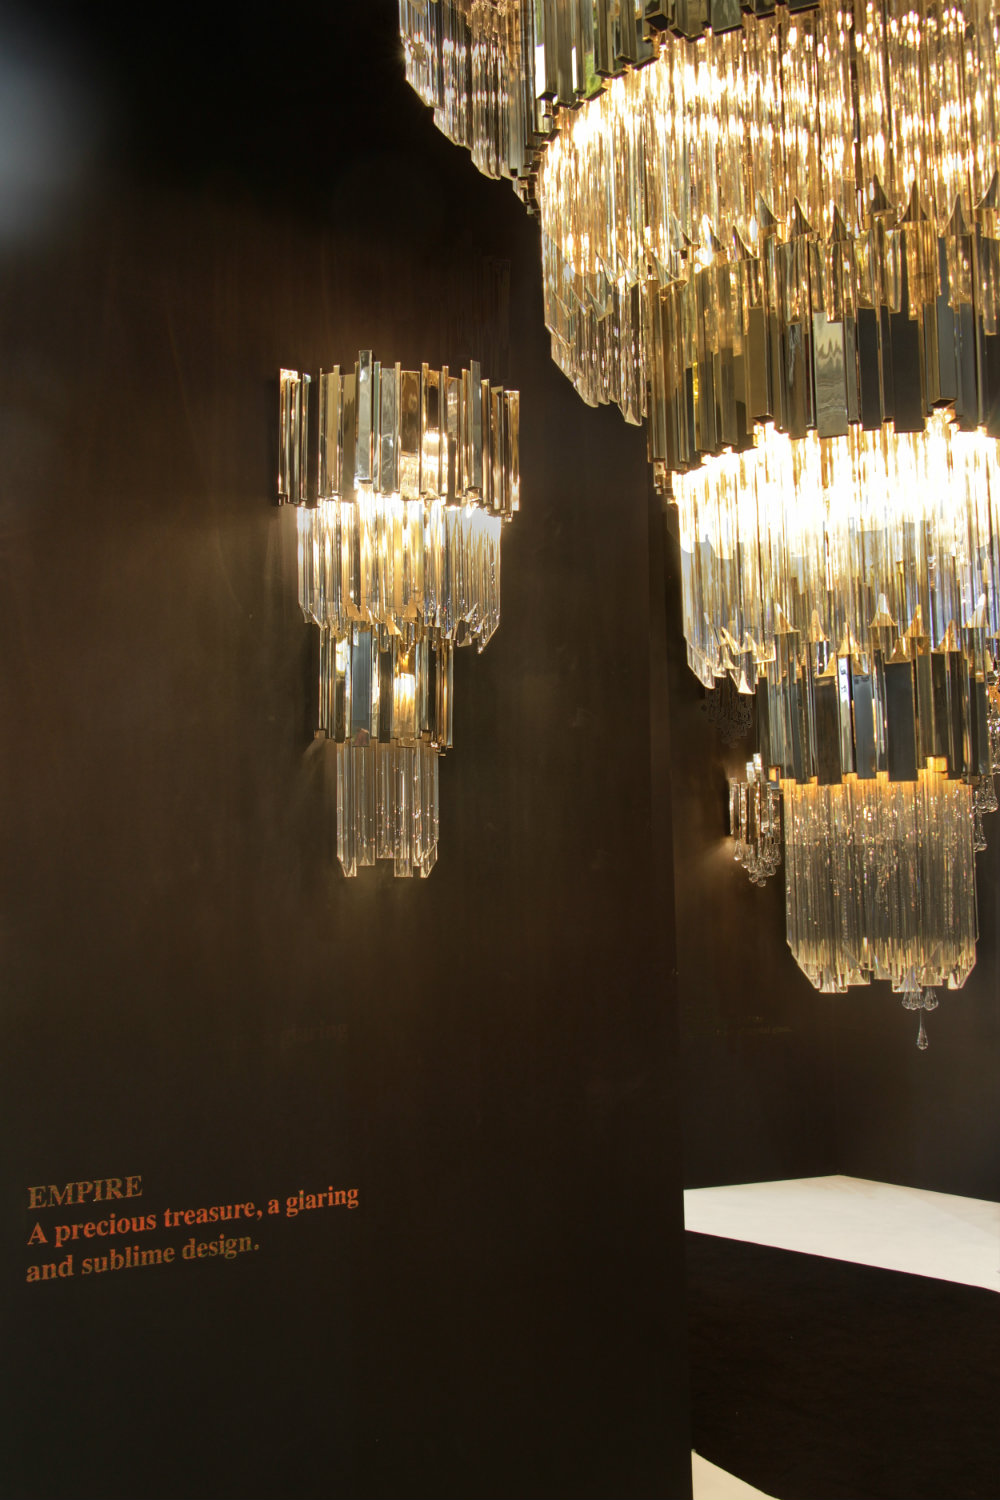 LUXXU's Presence at Maison et Objet in Pictures 04 Maison et Objet LUXXU's Presence at Maison et Objet in Pictures LUXXUs Presence at Maison et Objet in Pictures 04